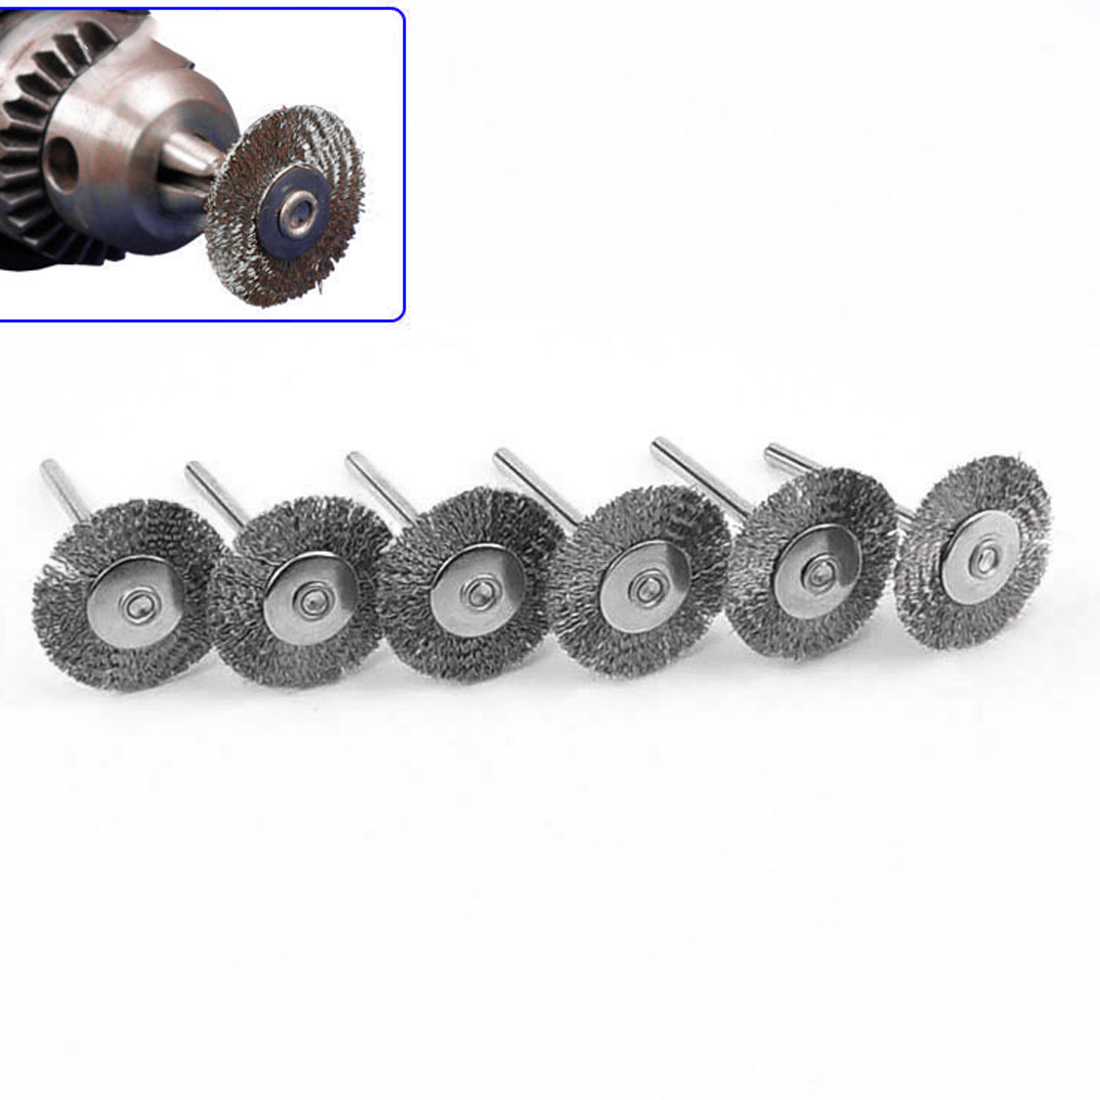 22mm Steel Rotary Brush 10Pcs Dremel Wire Wheel Brushes For Grinder Rotary Tool For Mini Drill Polishing  Dremel Accessories